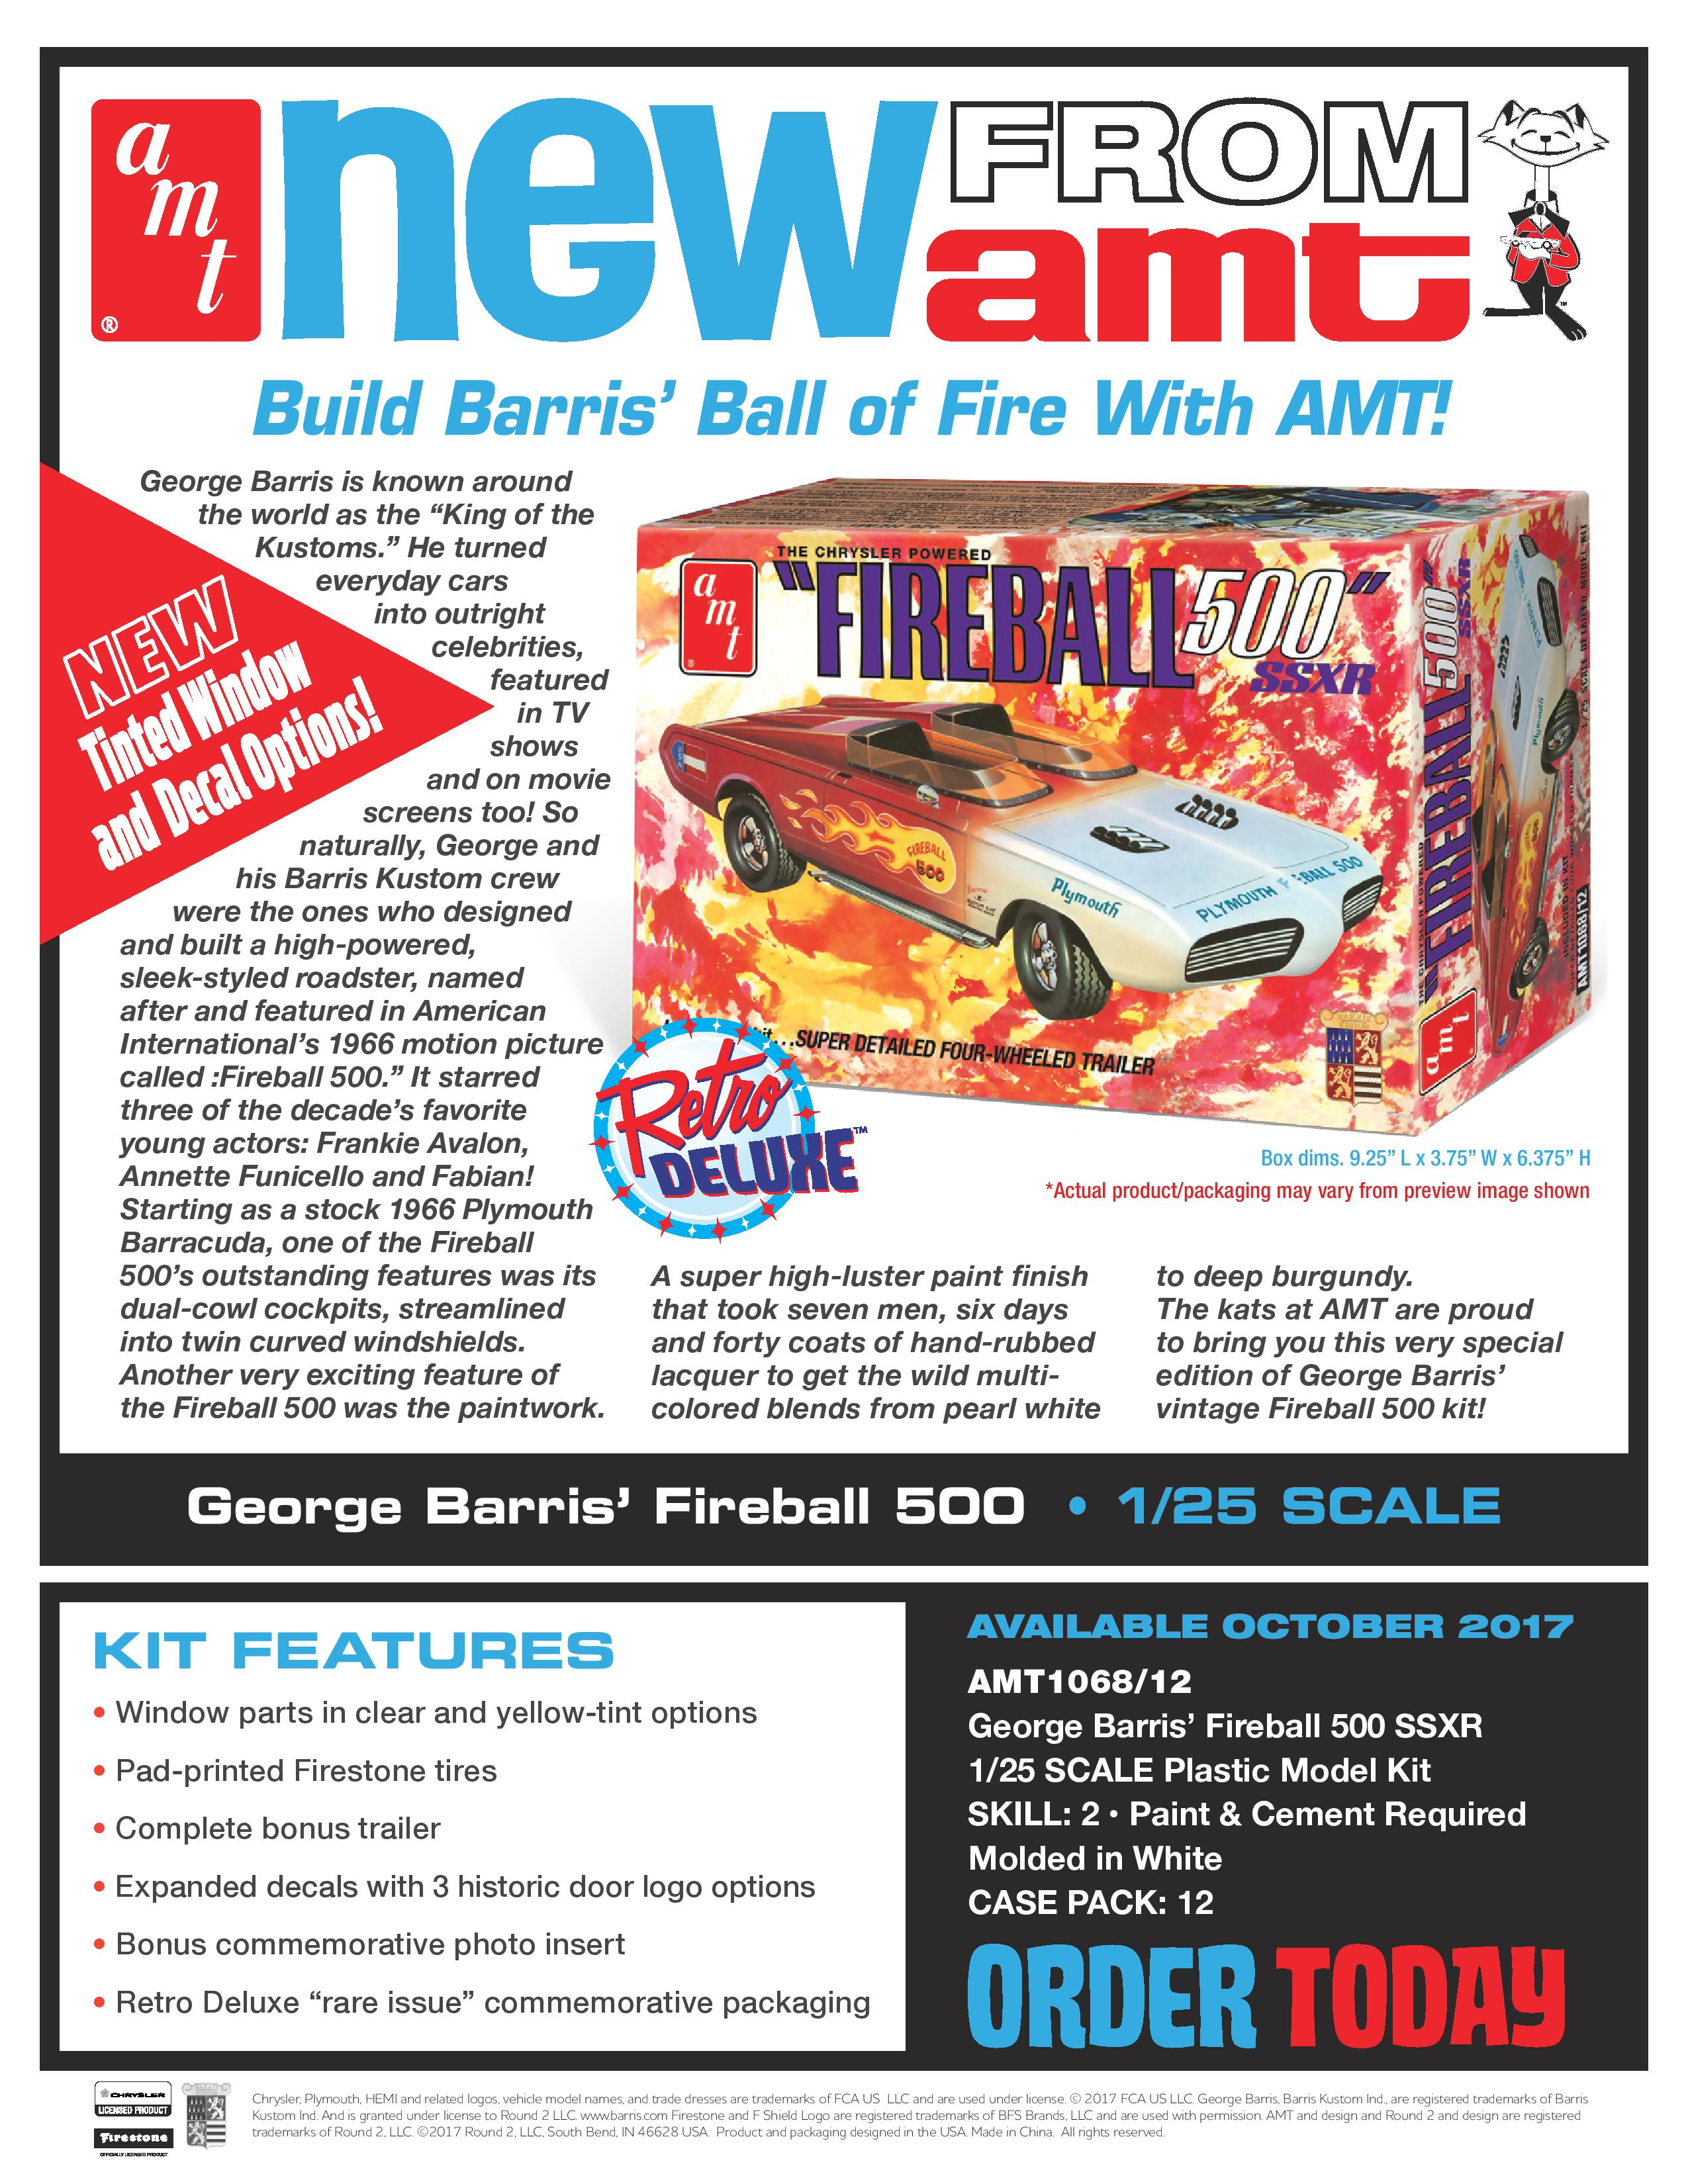 25 George Barris Fireball 500 in Commemorative Packaging AMT AMT1068 1 Red//White